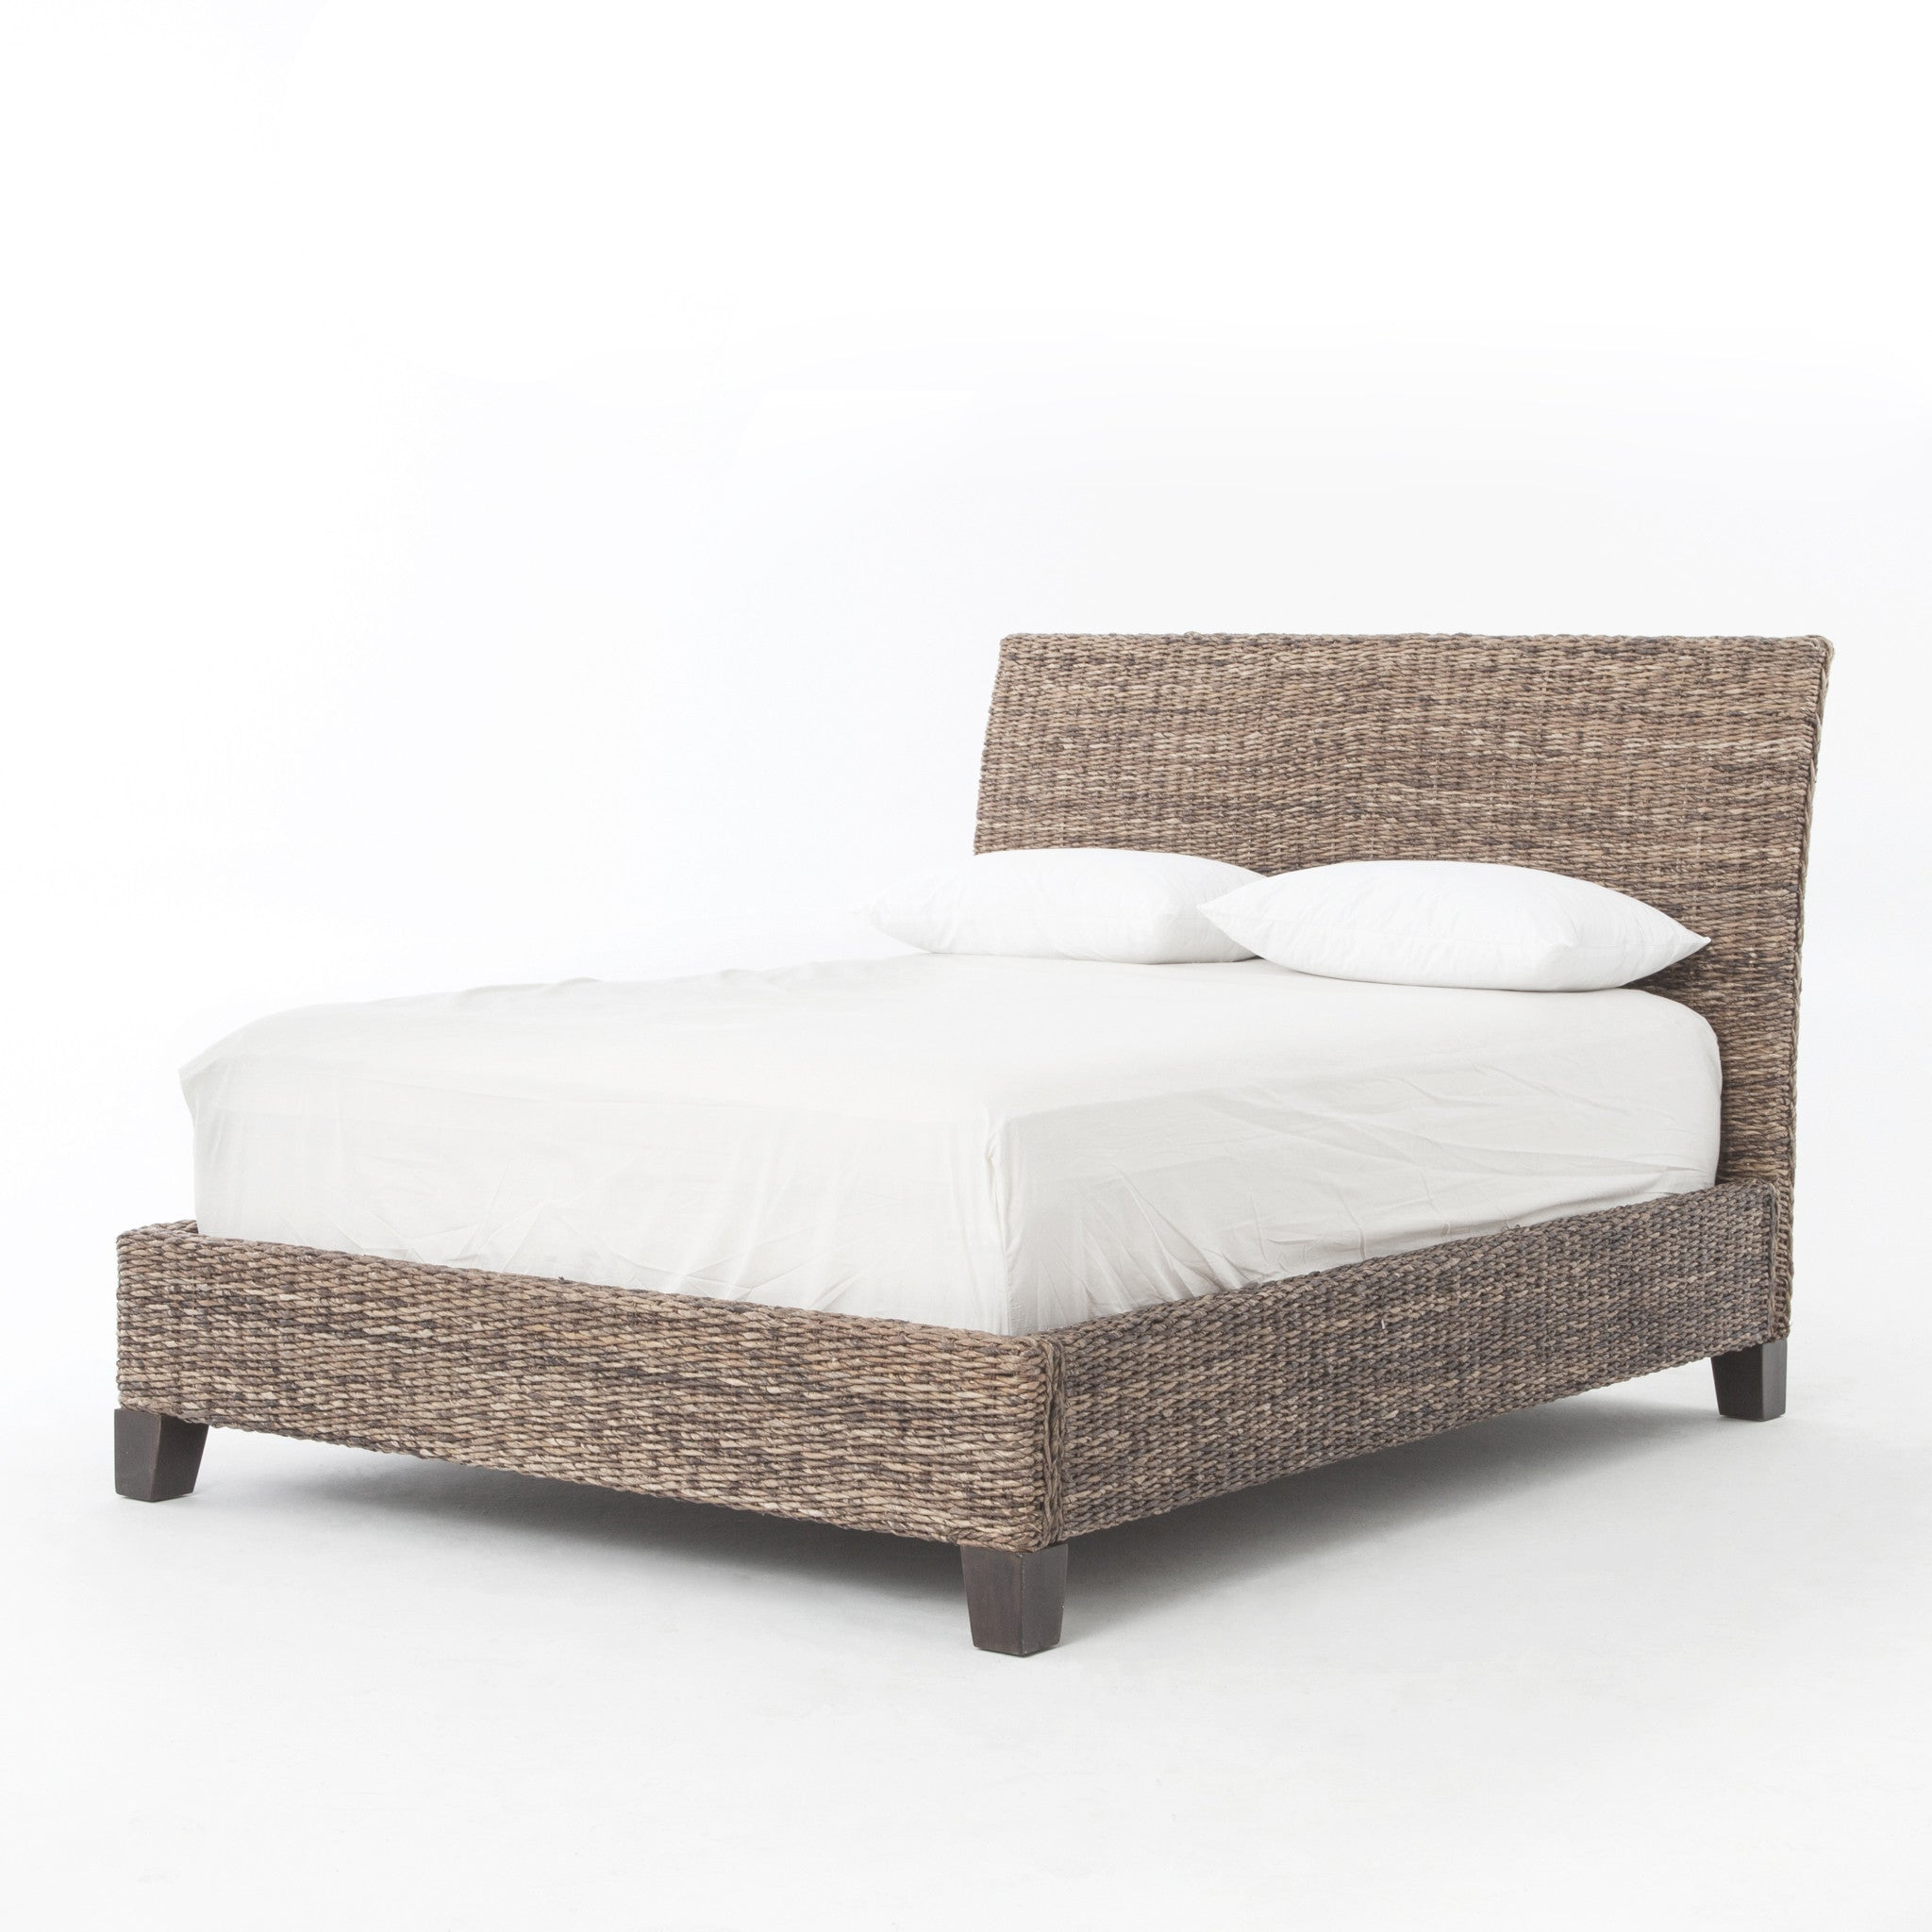 borsala-bed-king